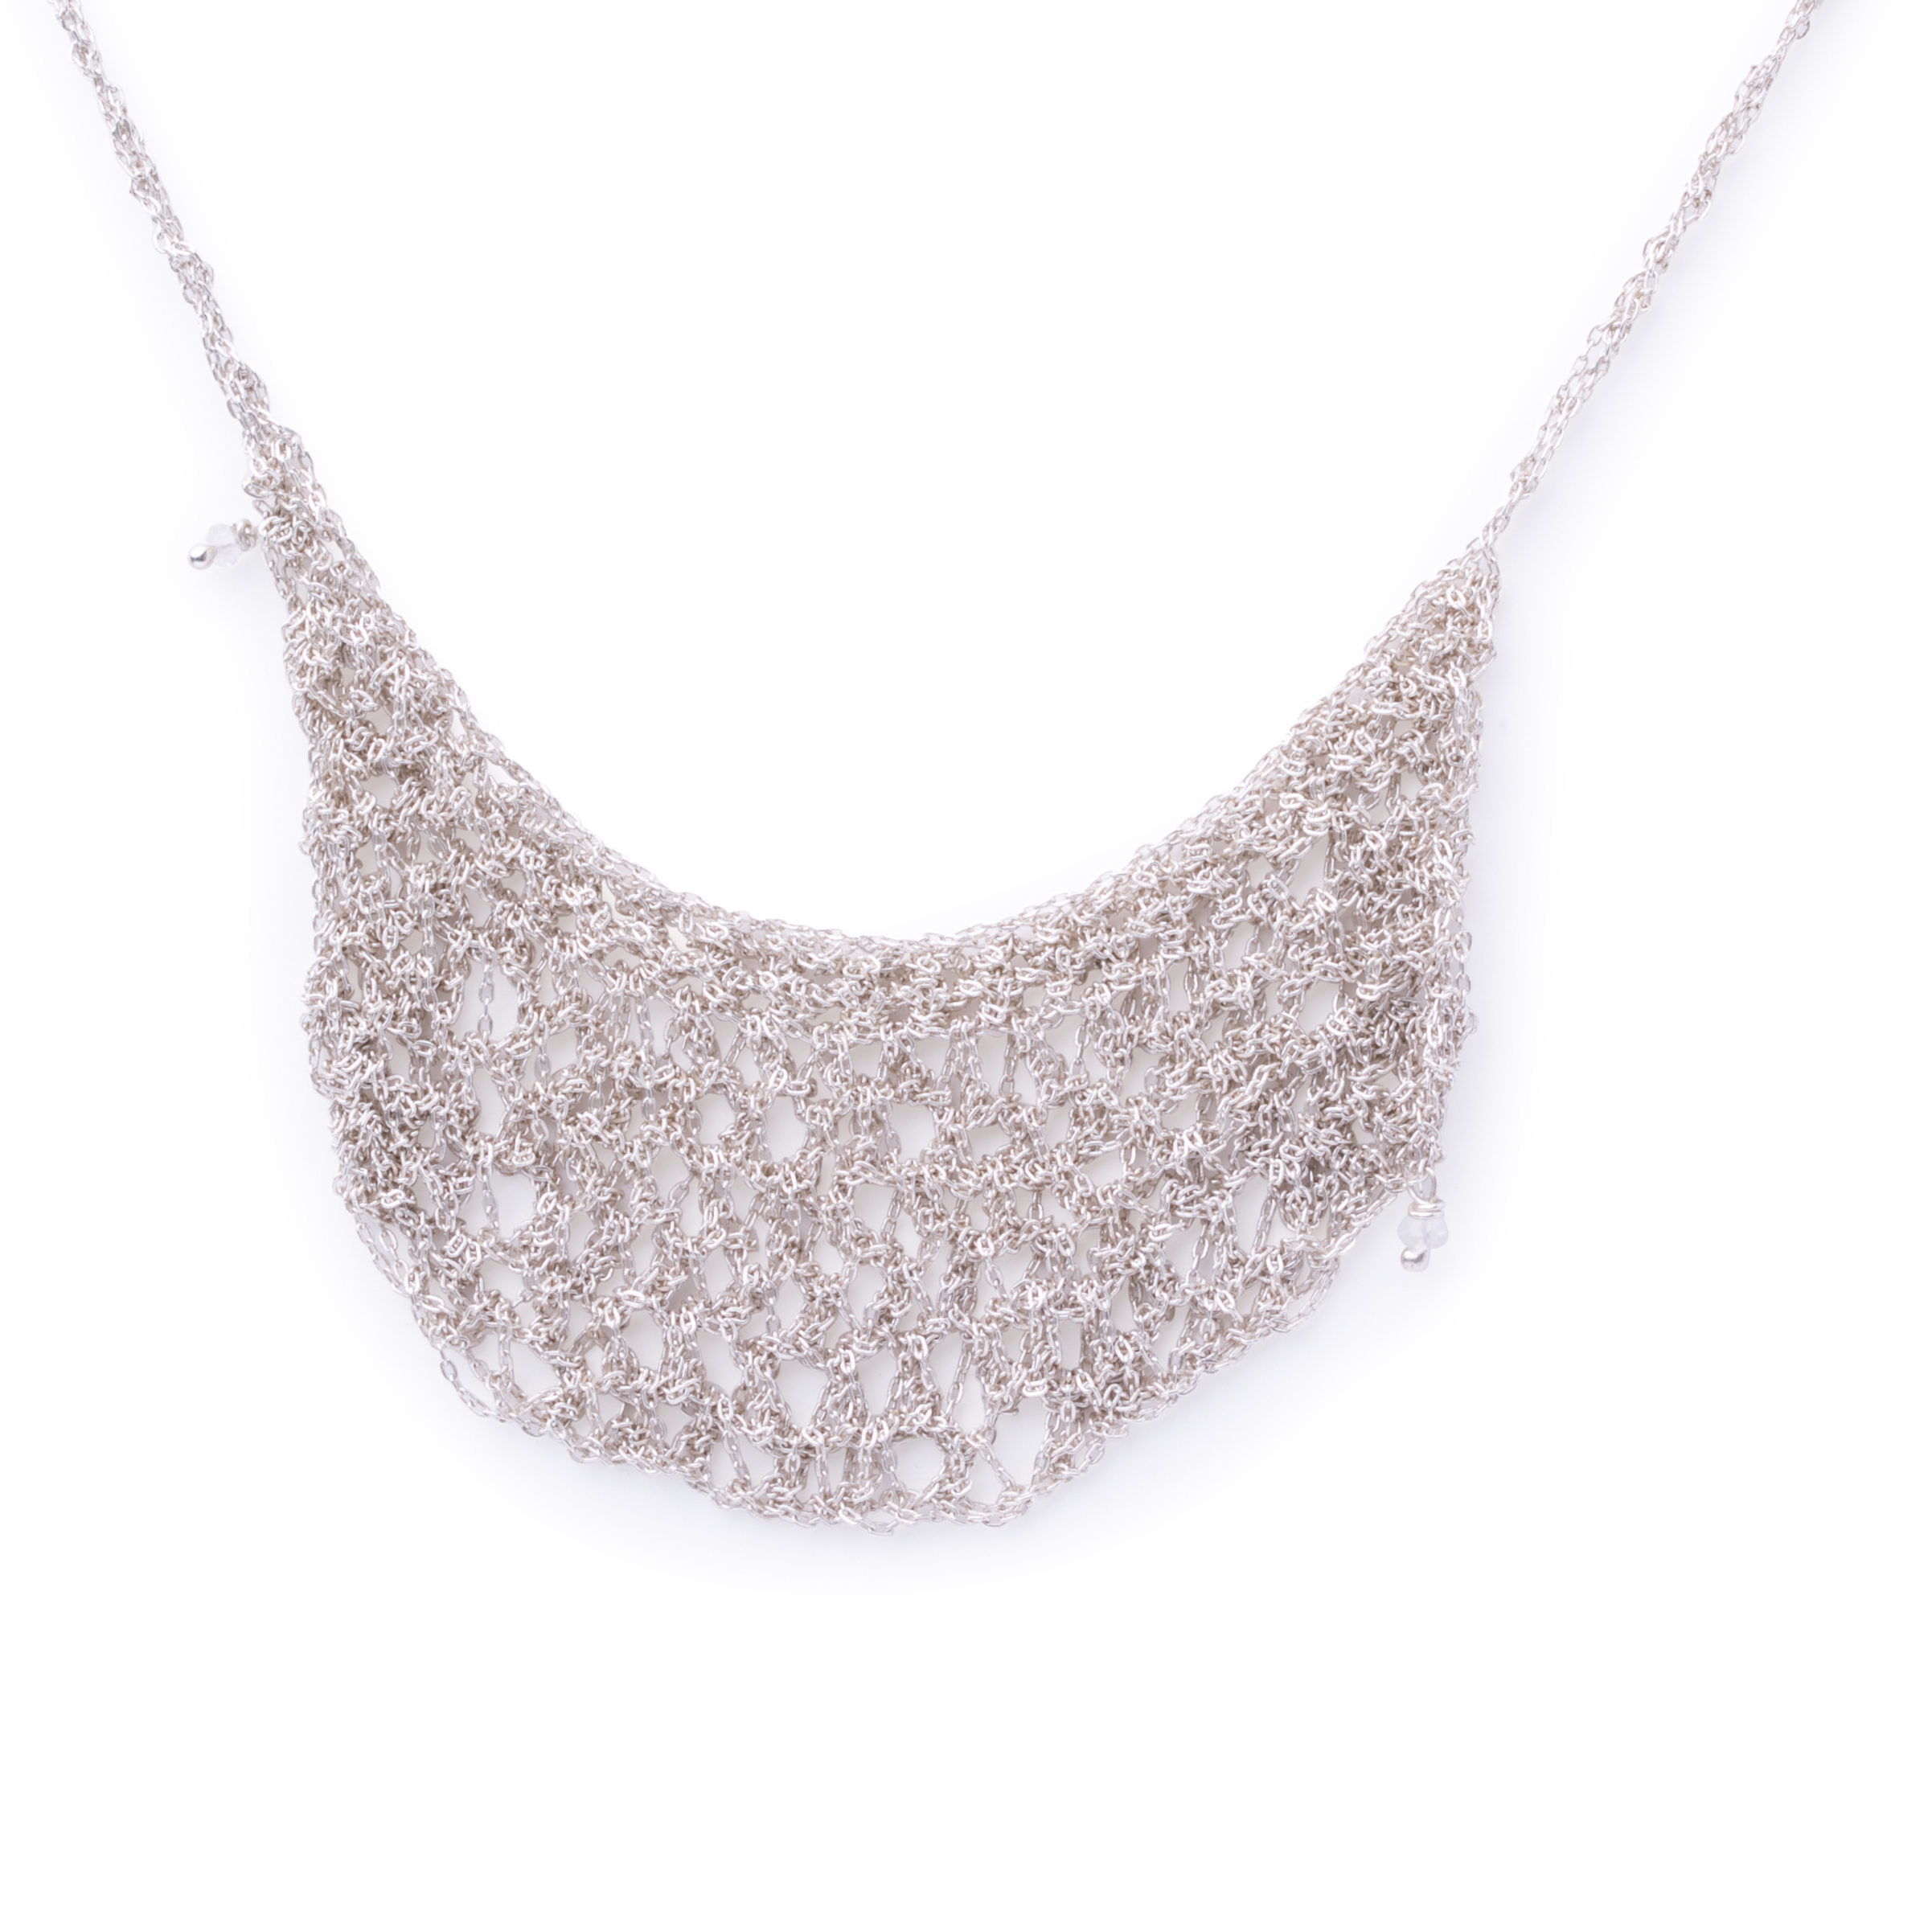 Necklace_knit-004.JPG